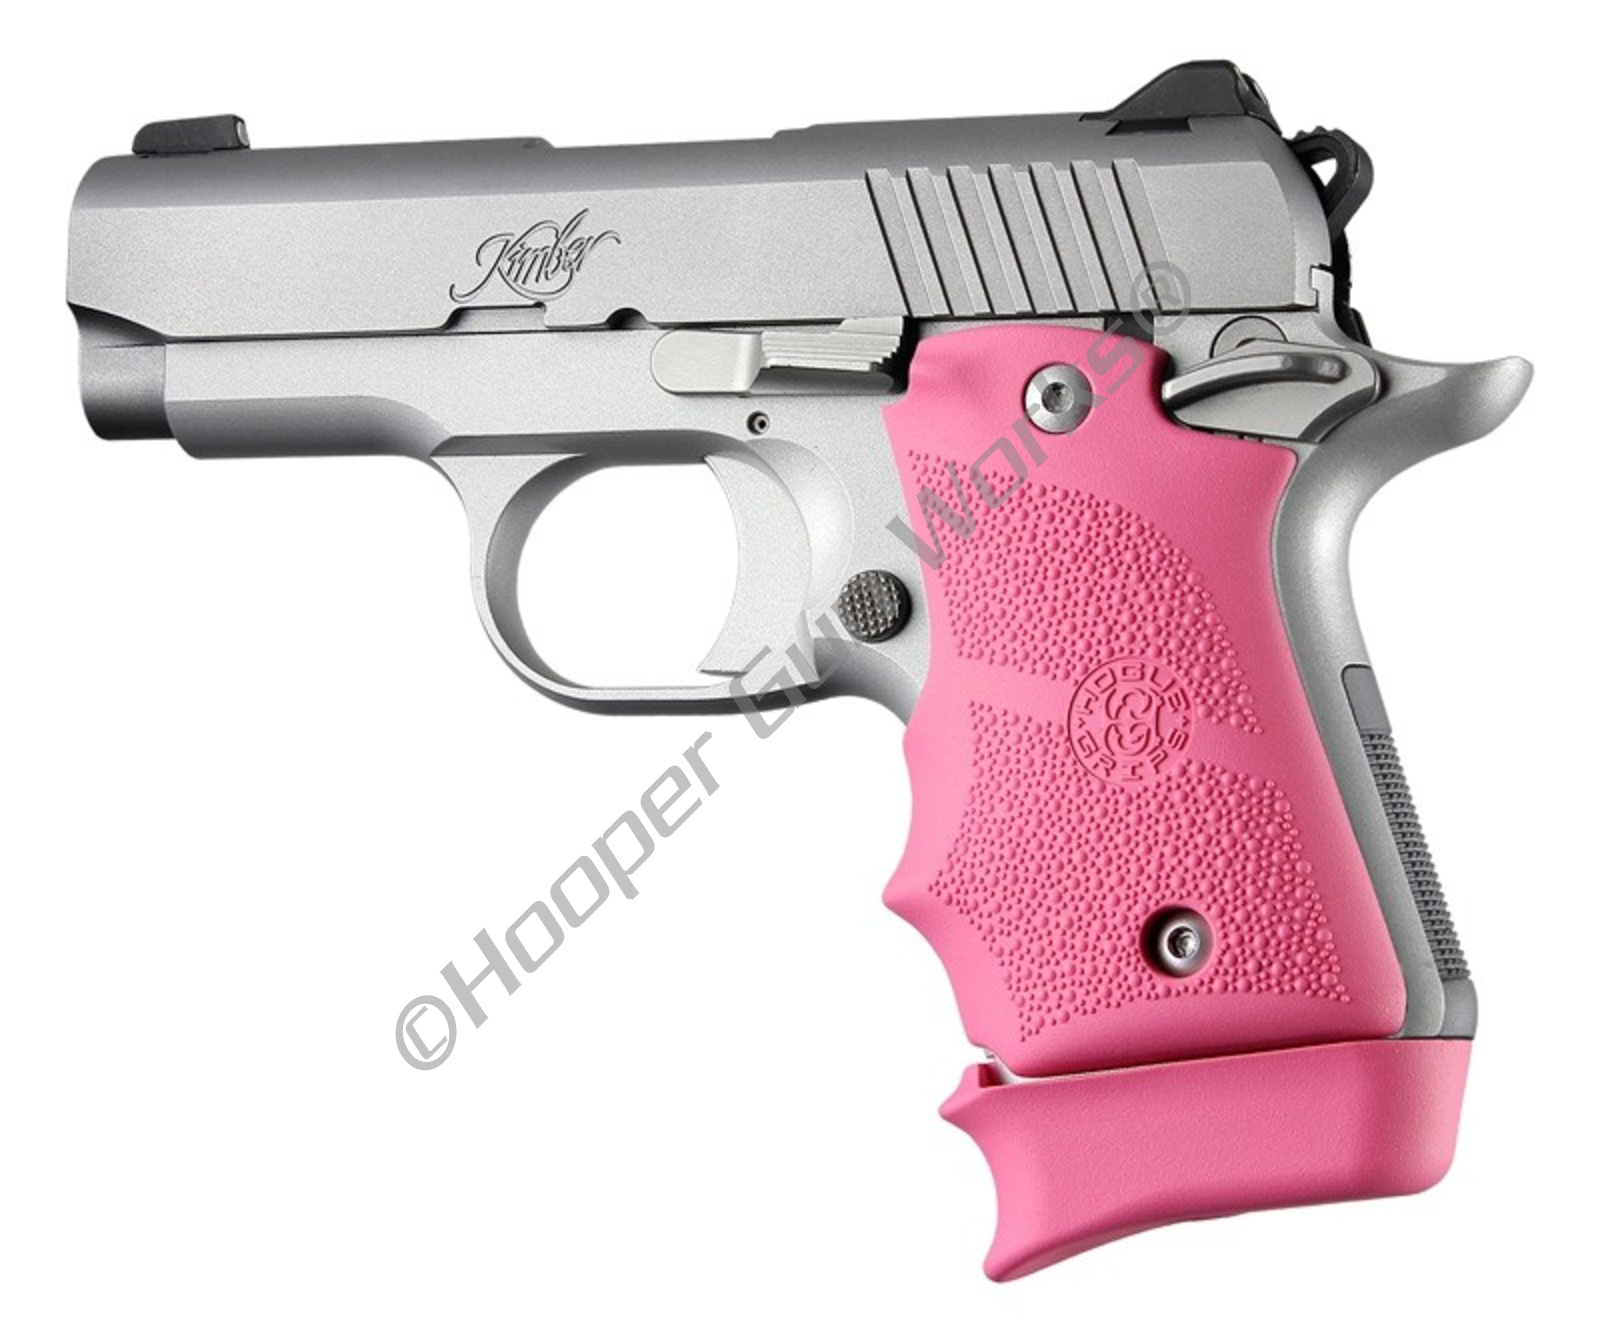 Hogue Grips for Kimber Micro 9 Ambi Safety Rubber Grip with Finger Grooves  Pink 39087